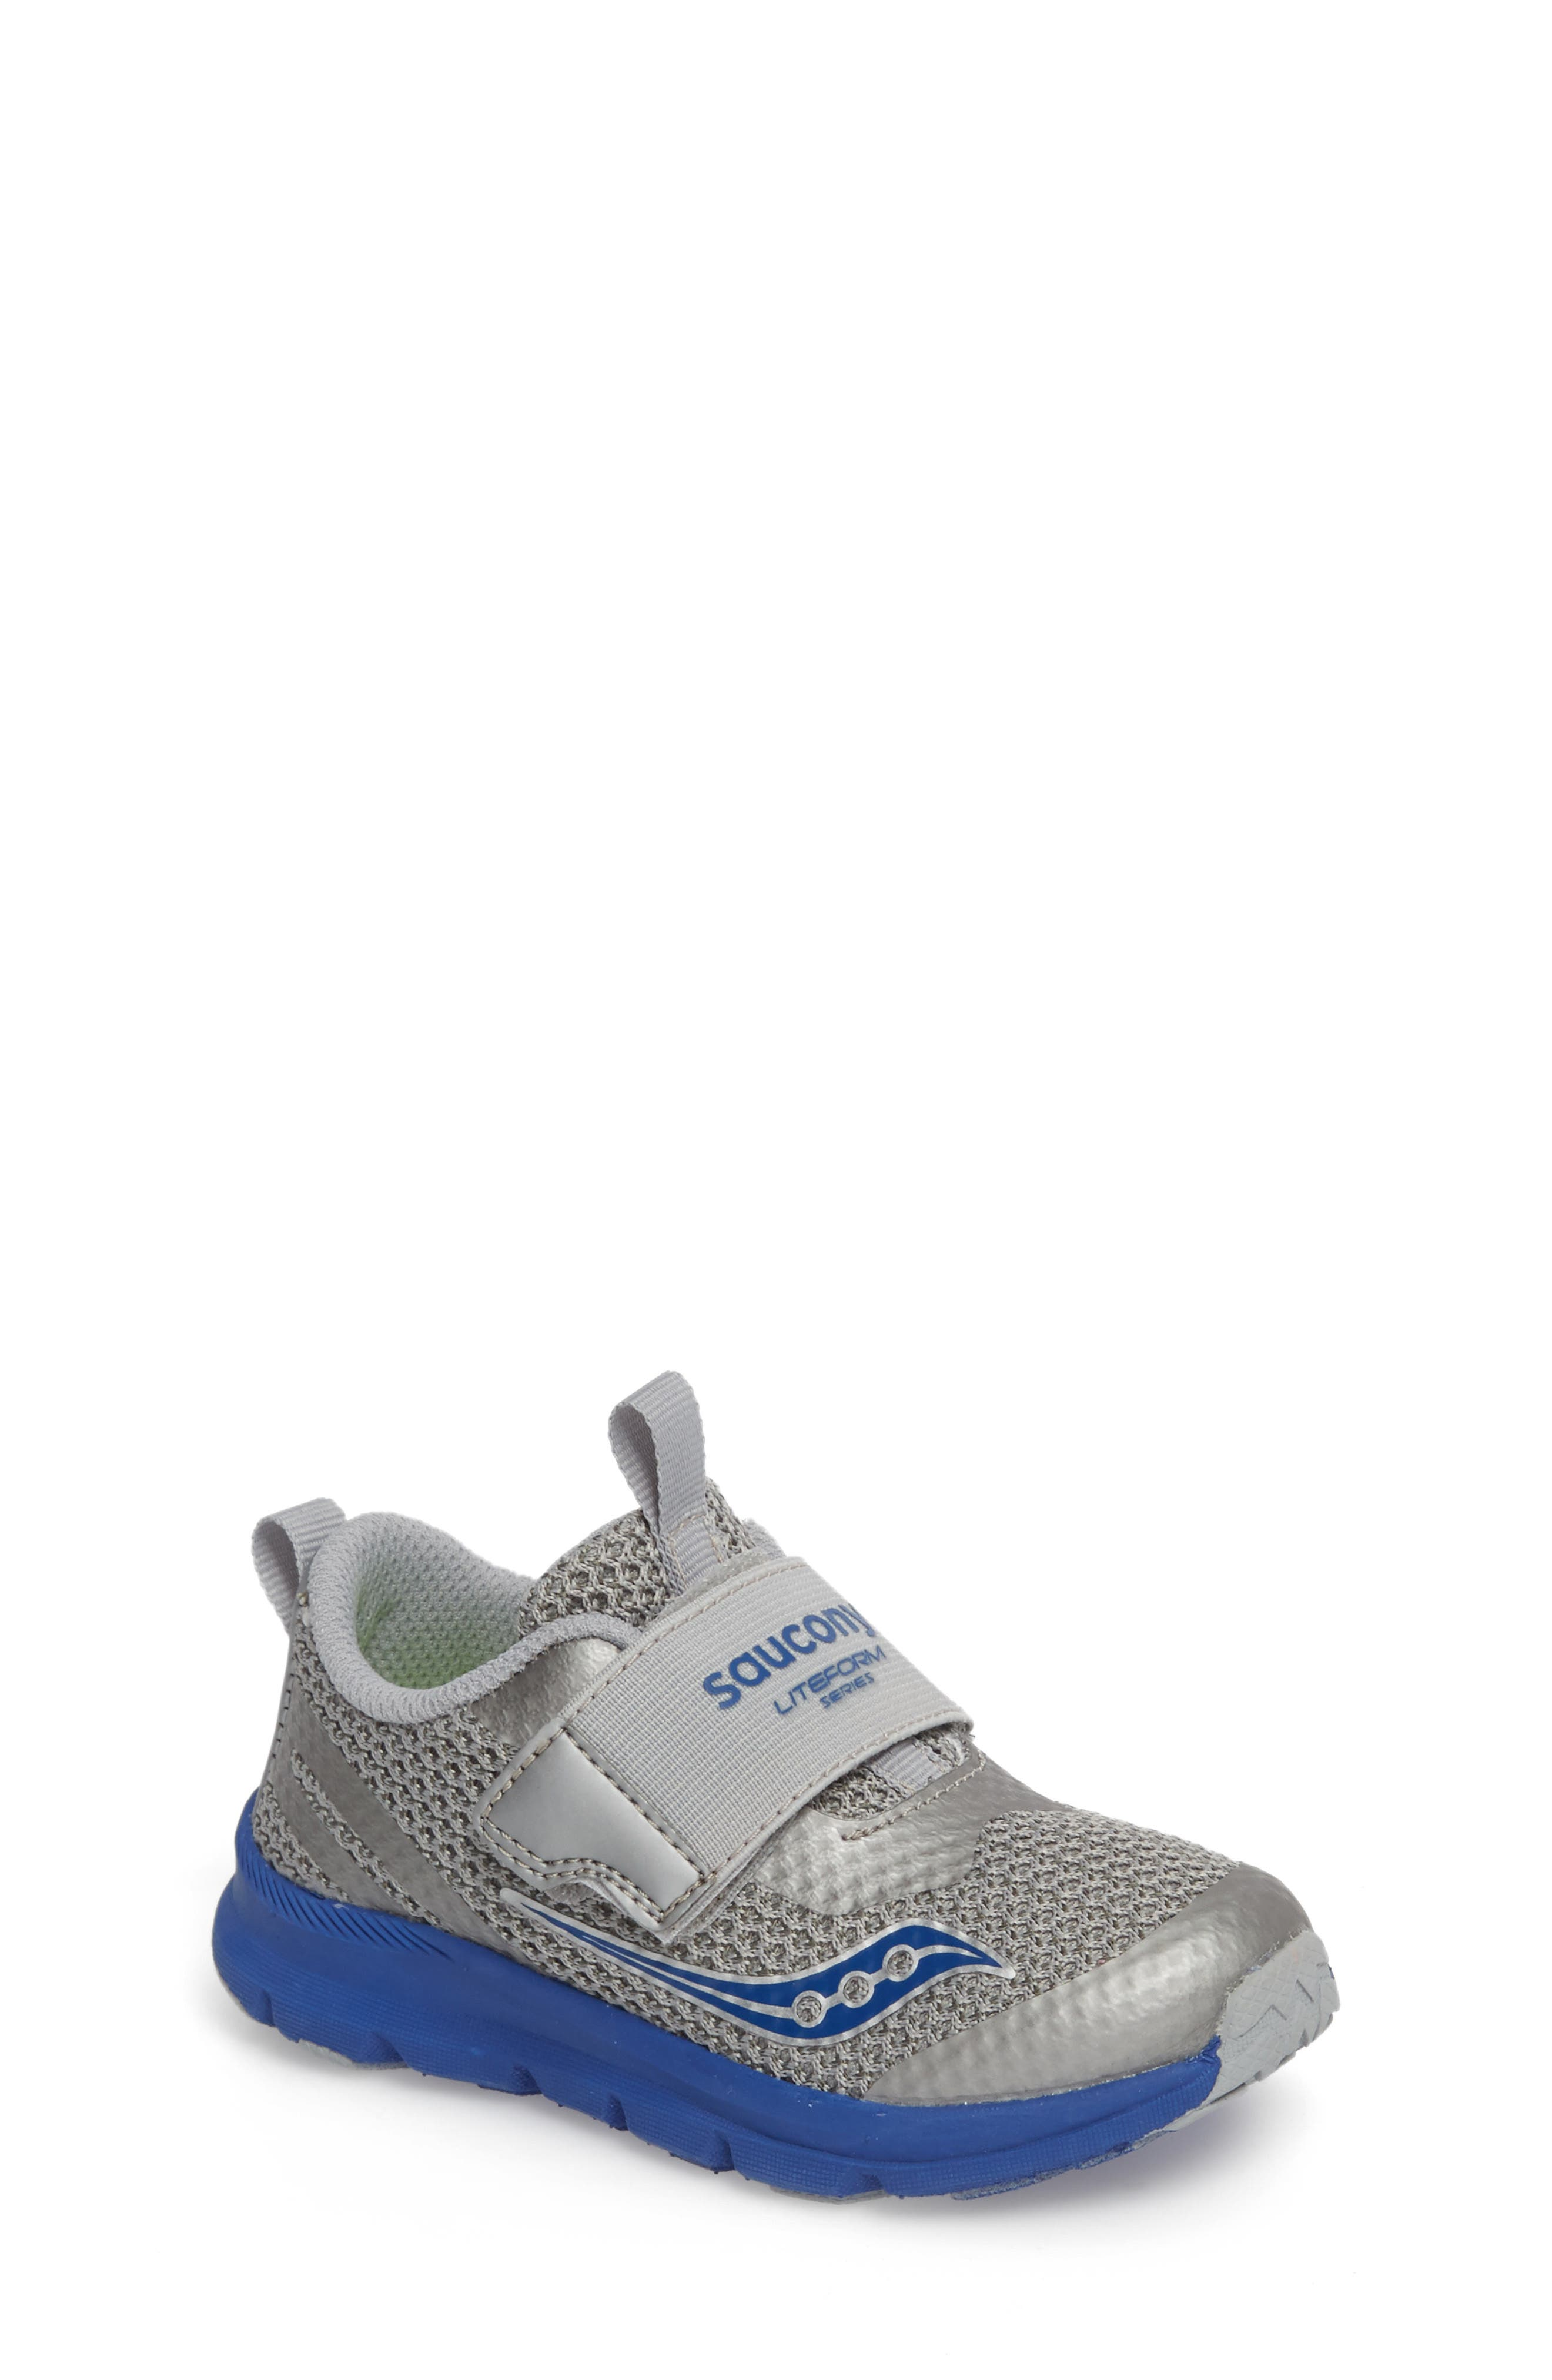 Baby Liteform Sneaker,                             Main thumbnail 1, color,                             Grey/ Blue